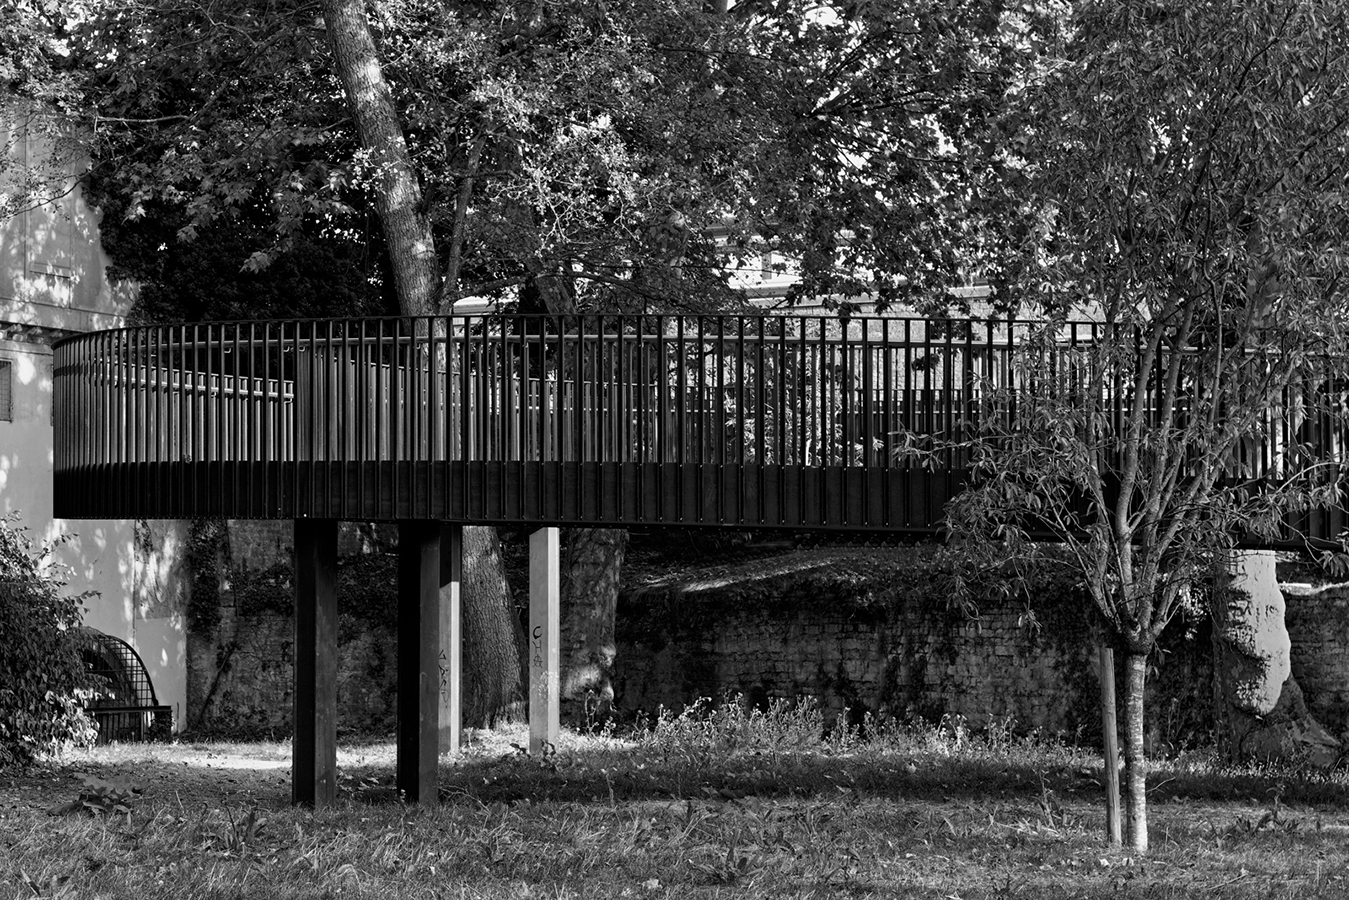 Photo Vincent_57-Passerelle-13 sept 2020.jpg